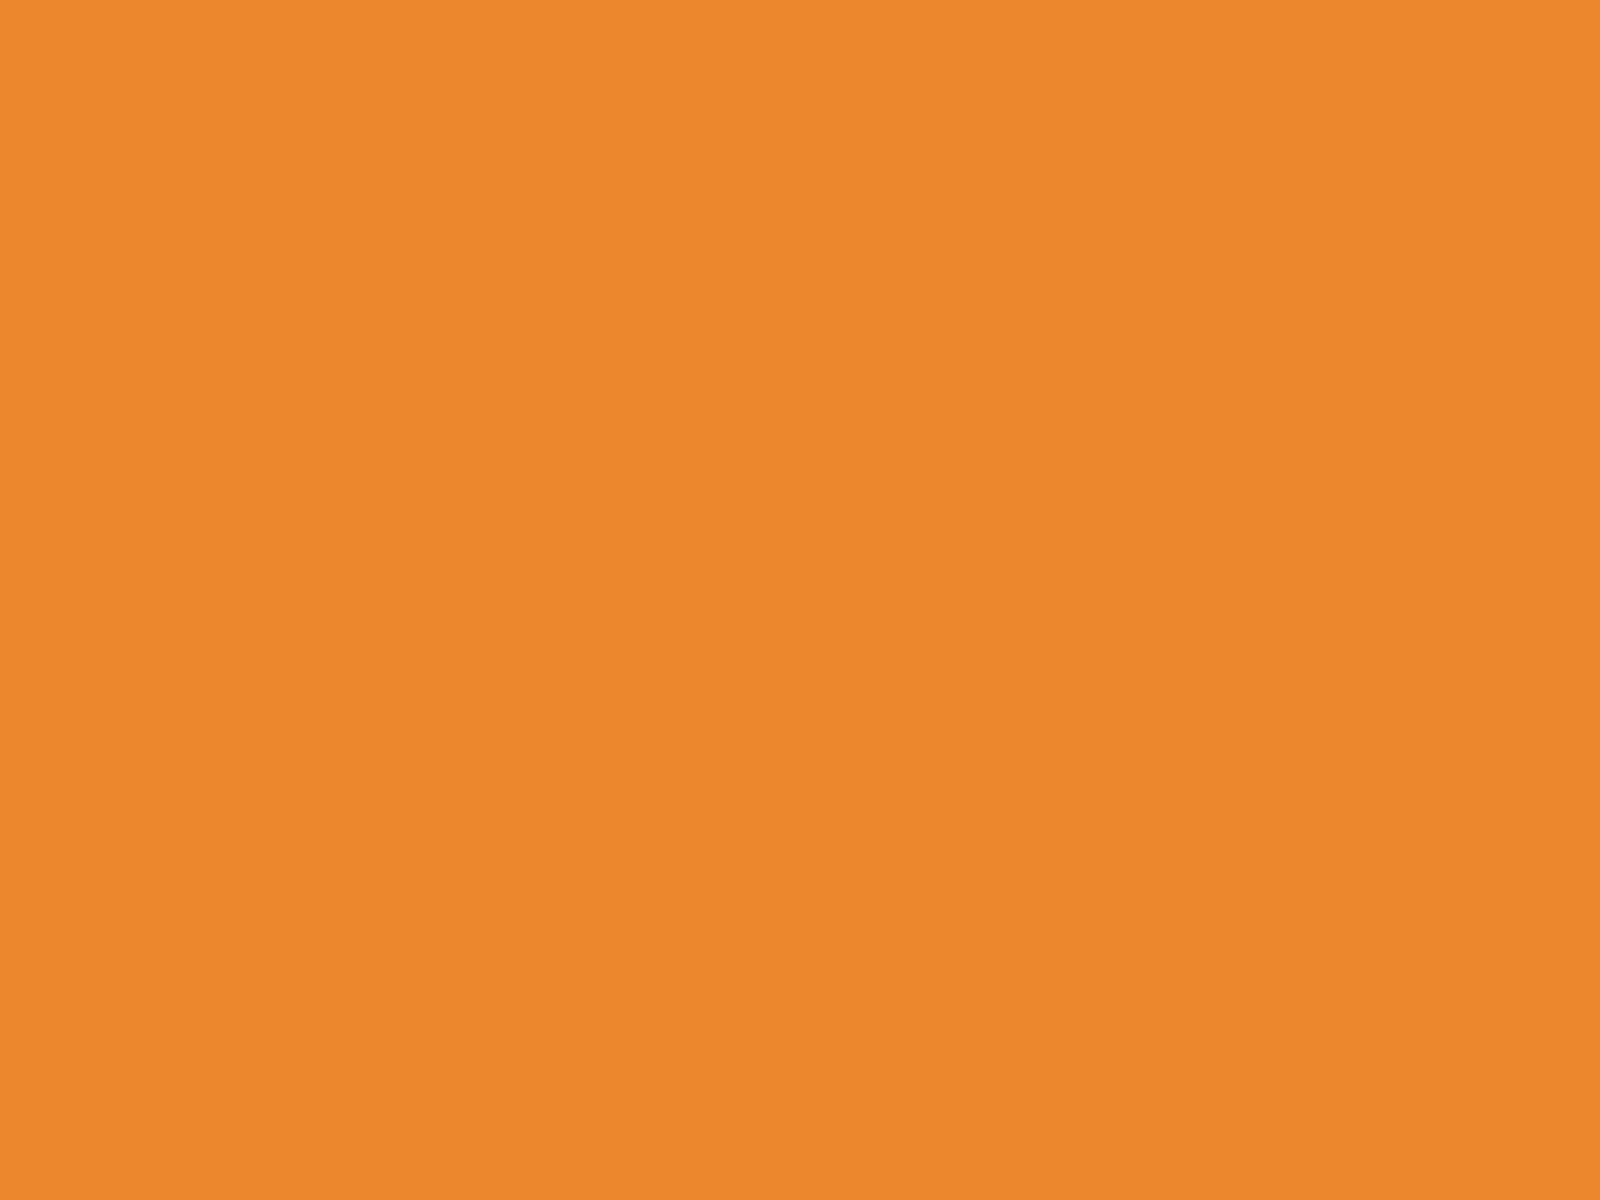 1600x1200 Cadmium Orange Solid Color Background